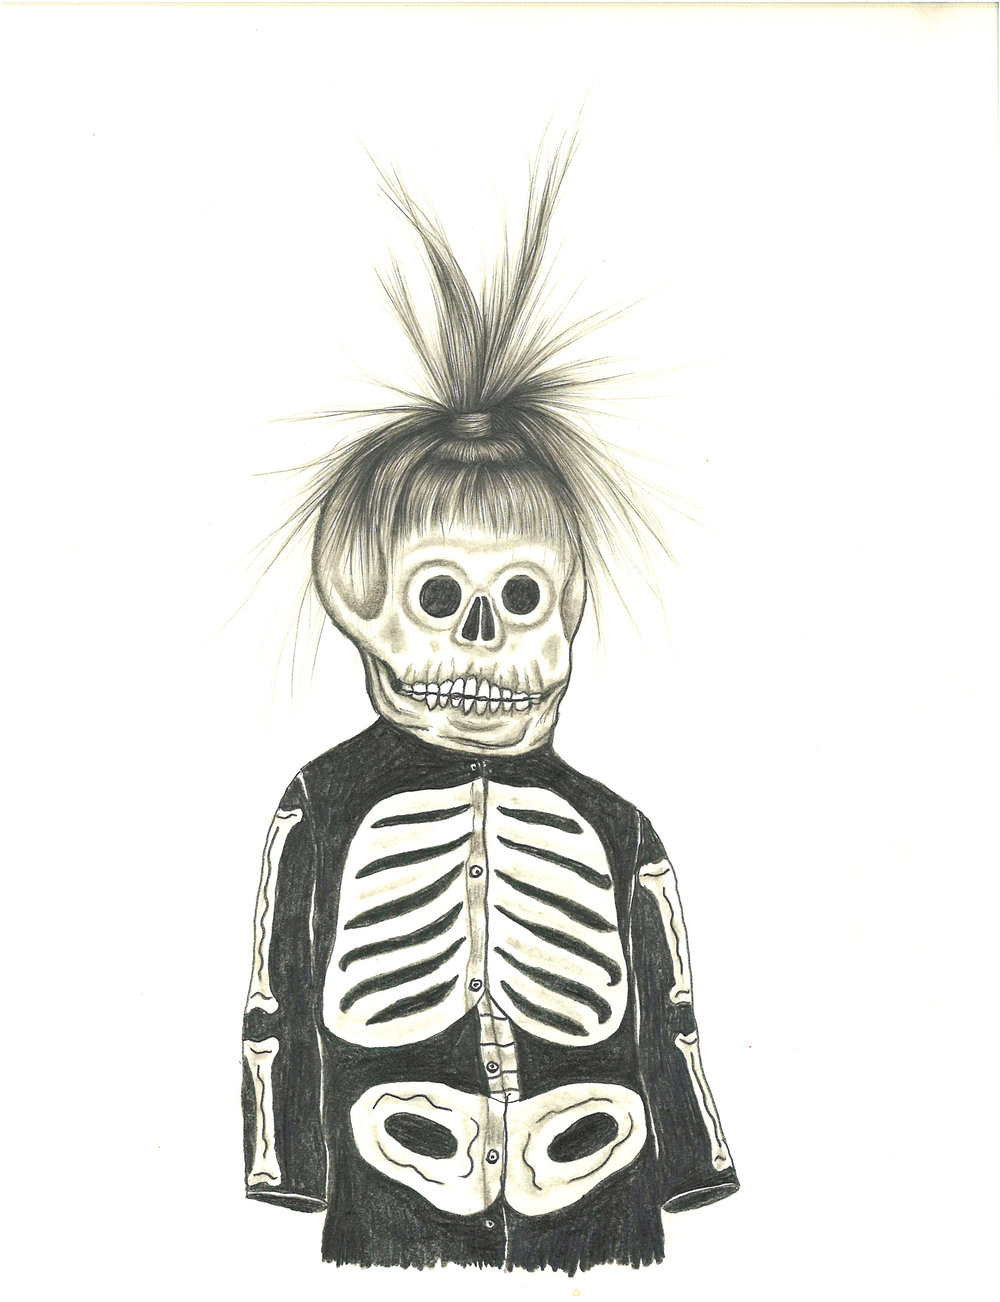 Fred Stonehouse and Raeleen Kao, MUERTO, Graphite and Colored Pencil on Paper, 12 x 9""